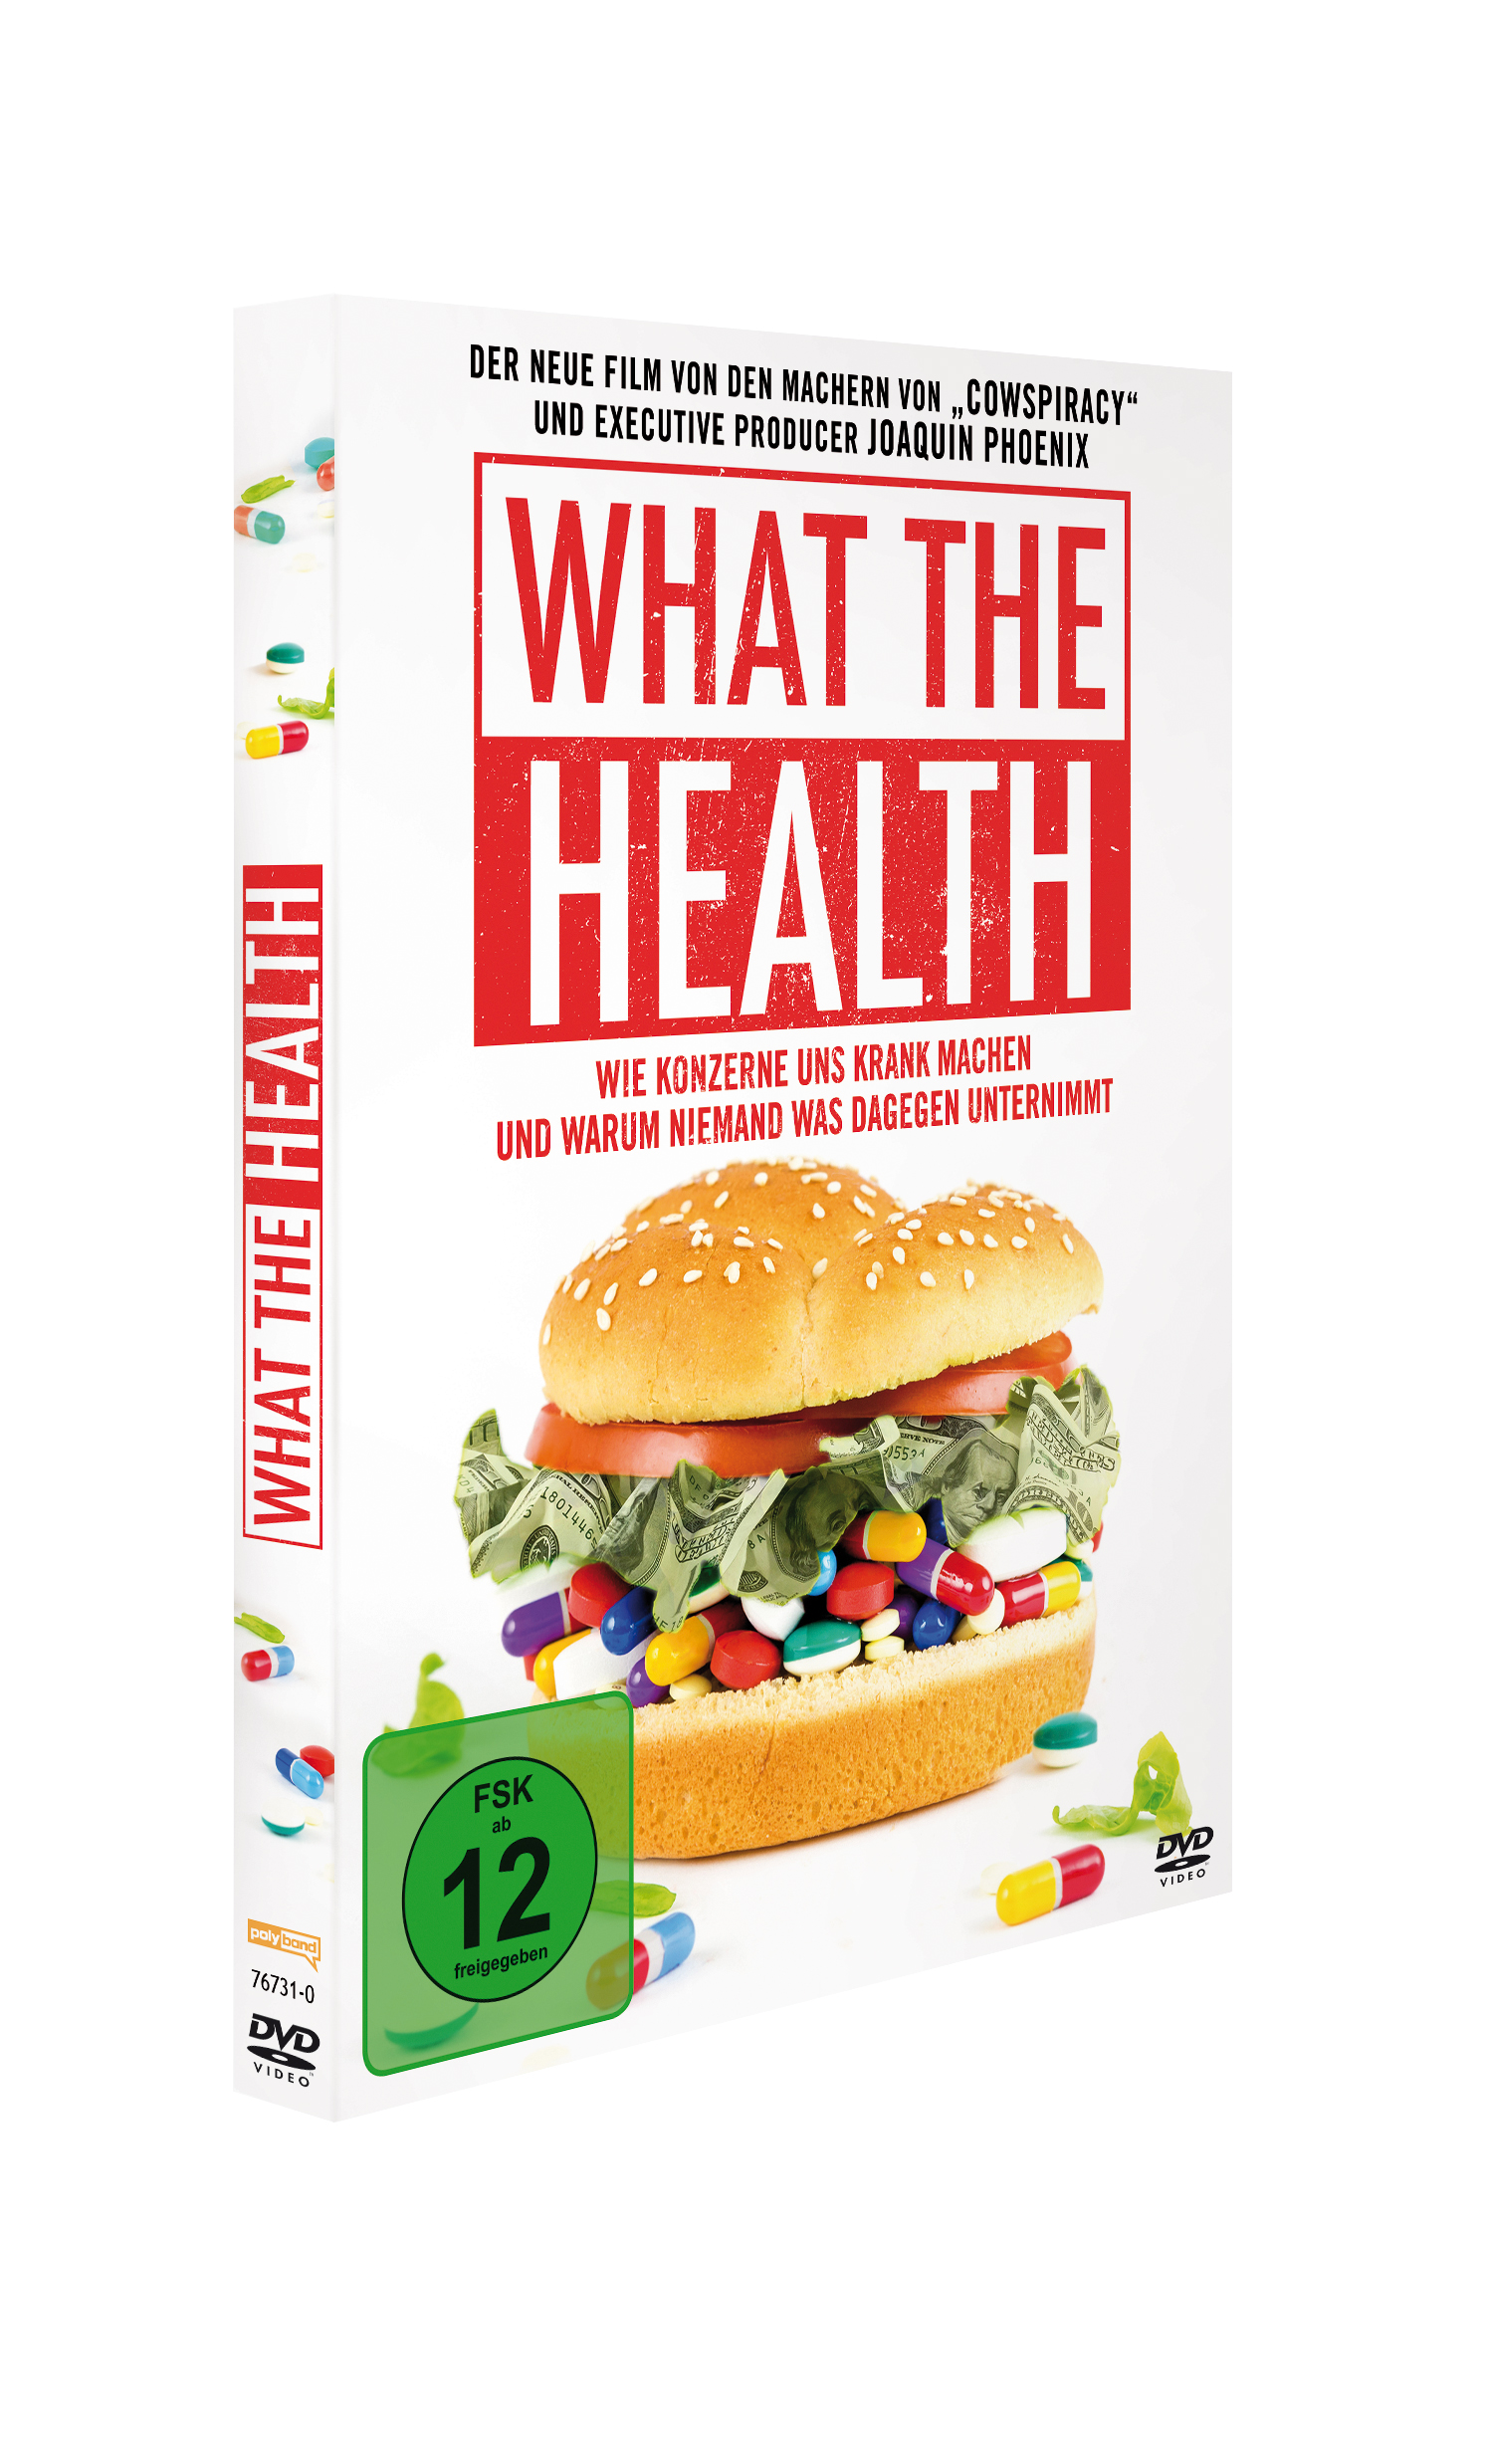 What The Health - DVD Image